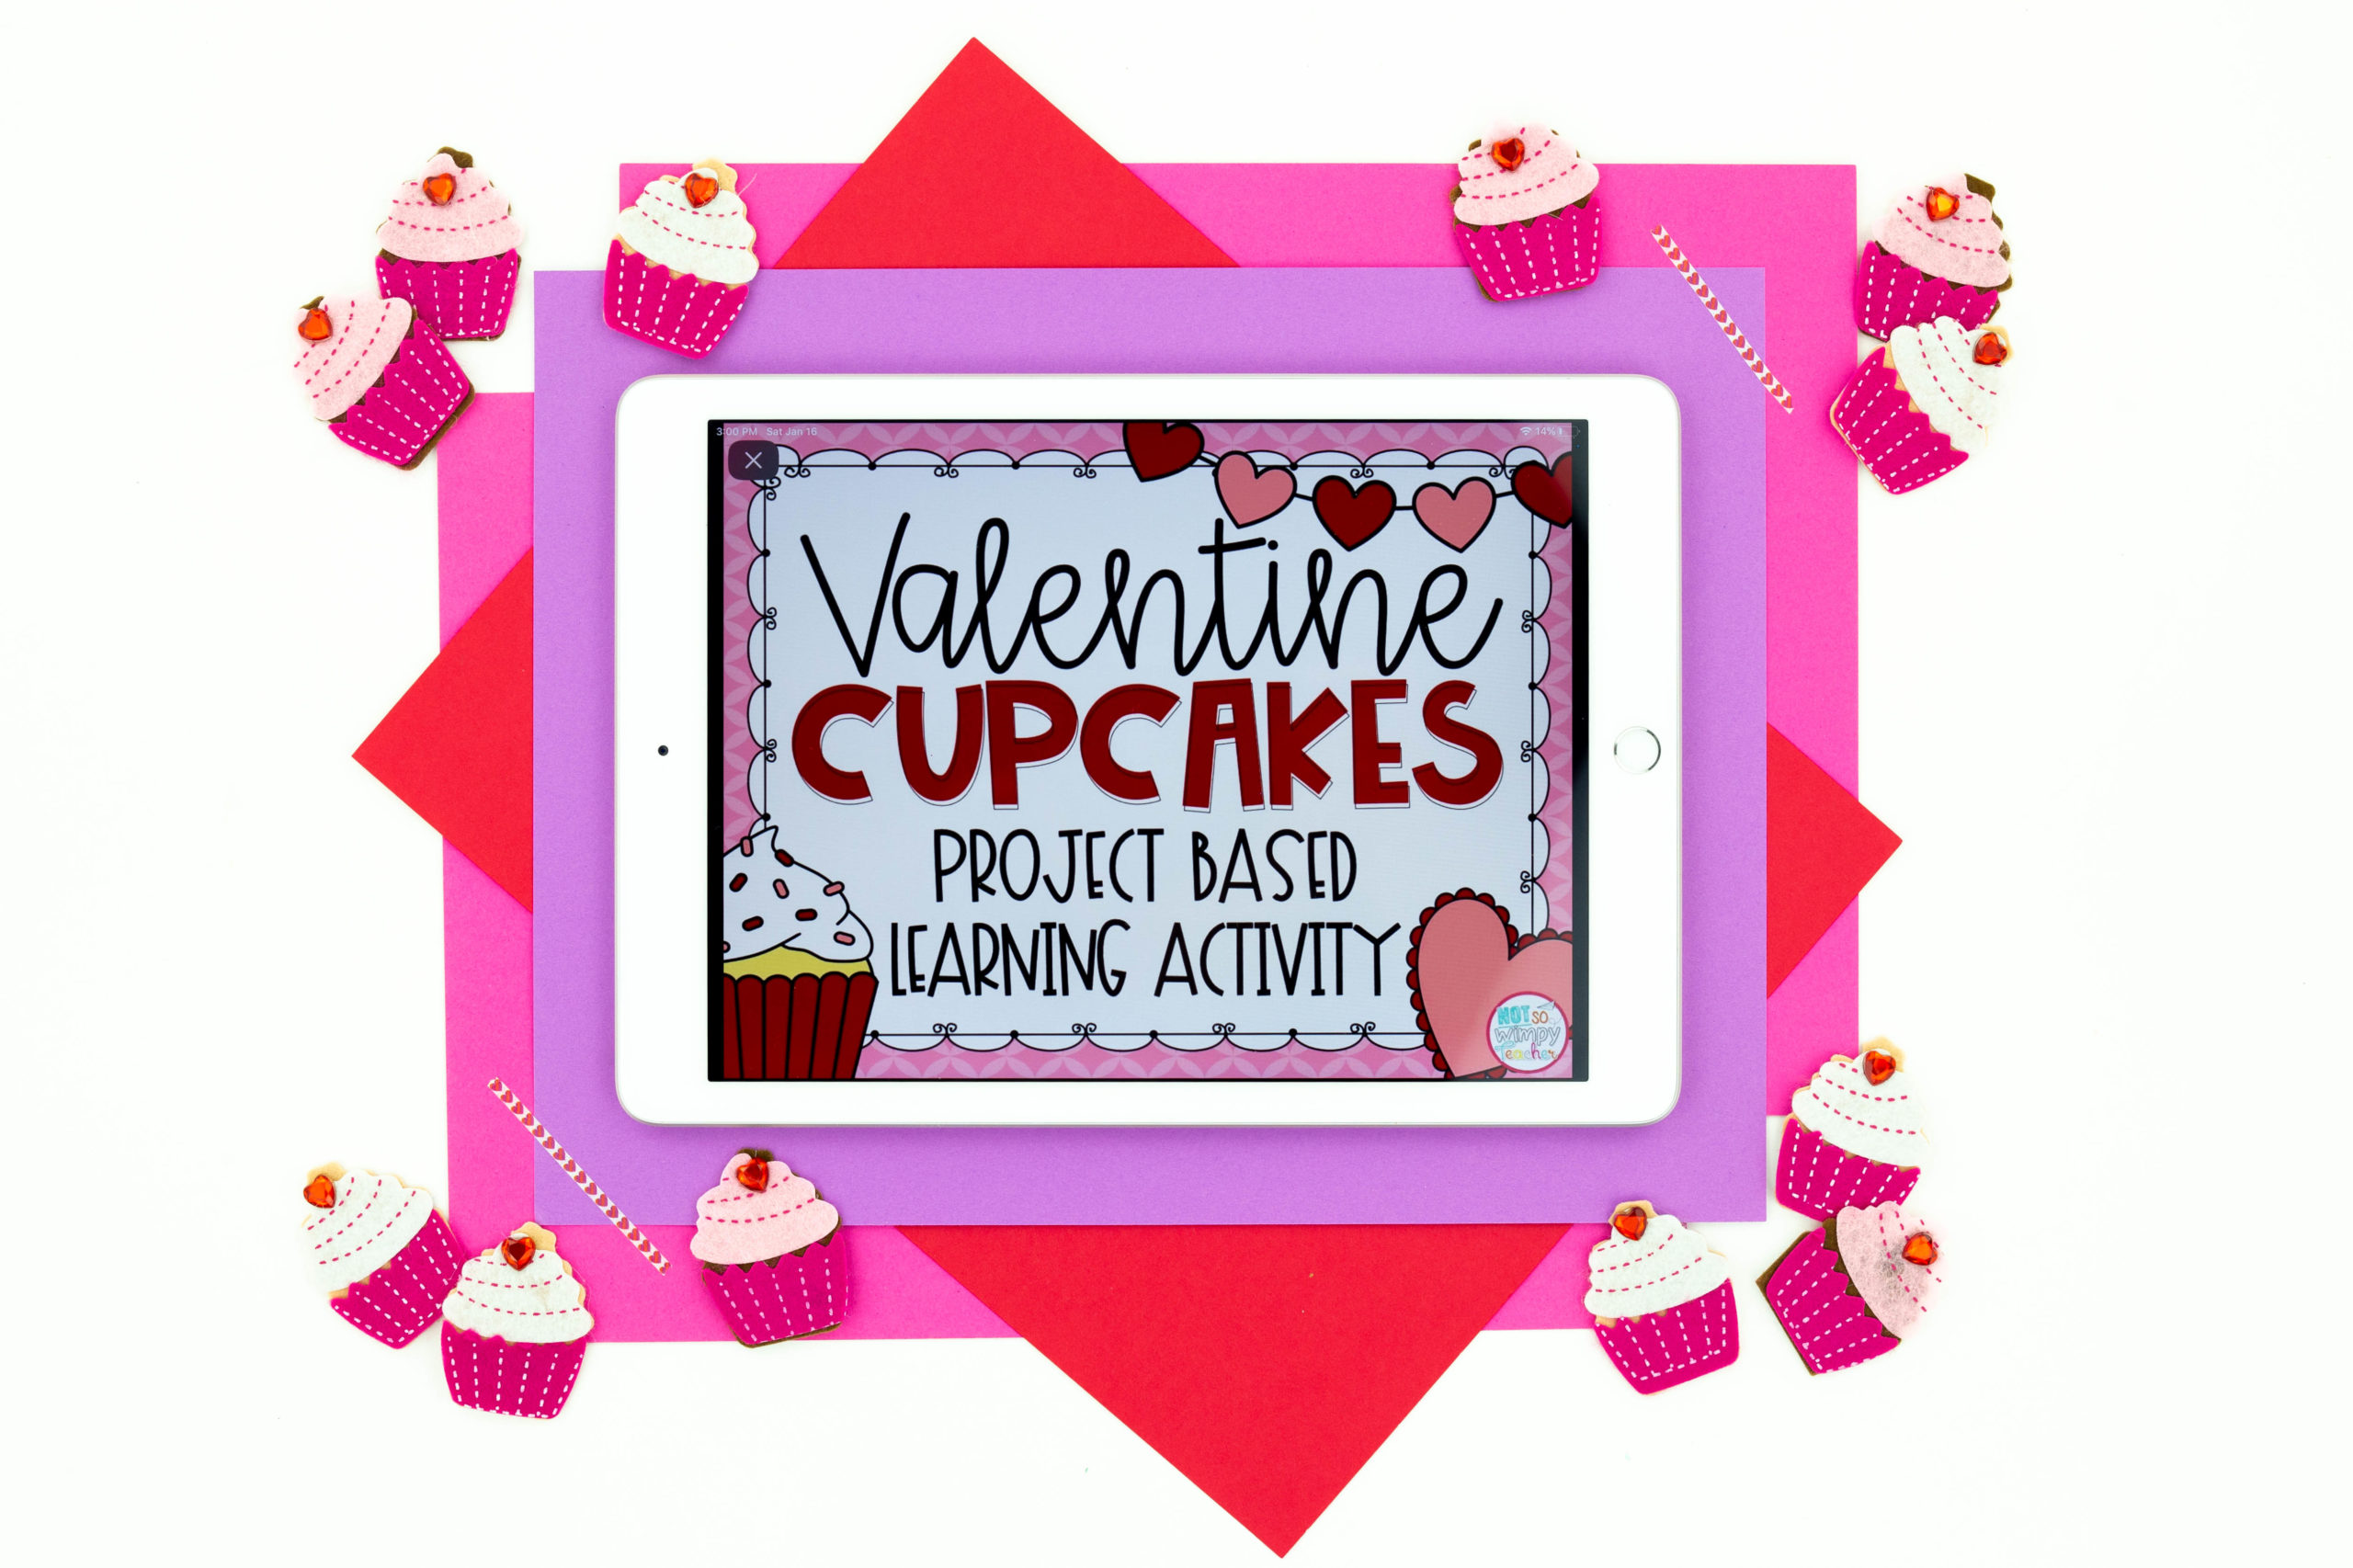 iPad image of Valentine Cupcakes Project Based Learning Activity on red and pink background surrounded by cupcakes